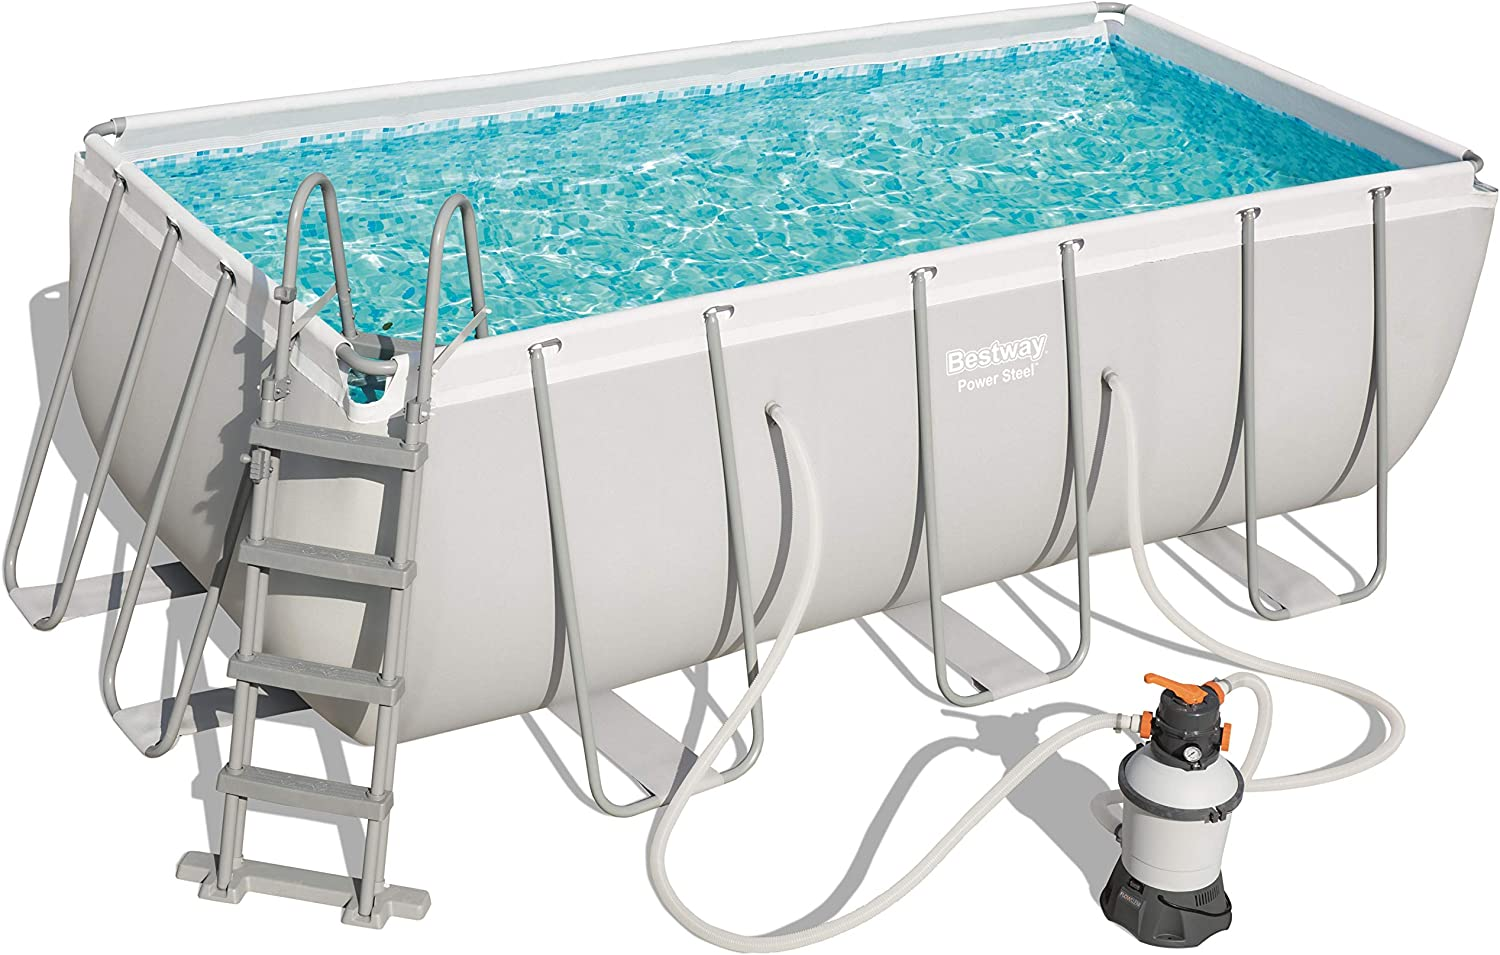 Bestway 56457 Power Steel Rectangular Pool 412 x 201 x 122 cm ...